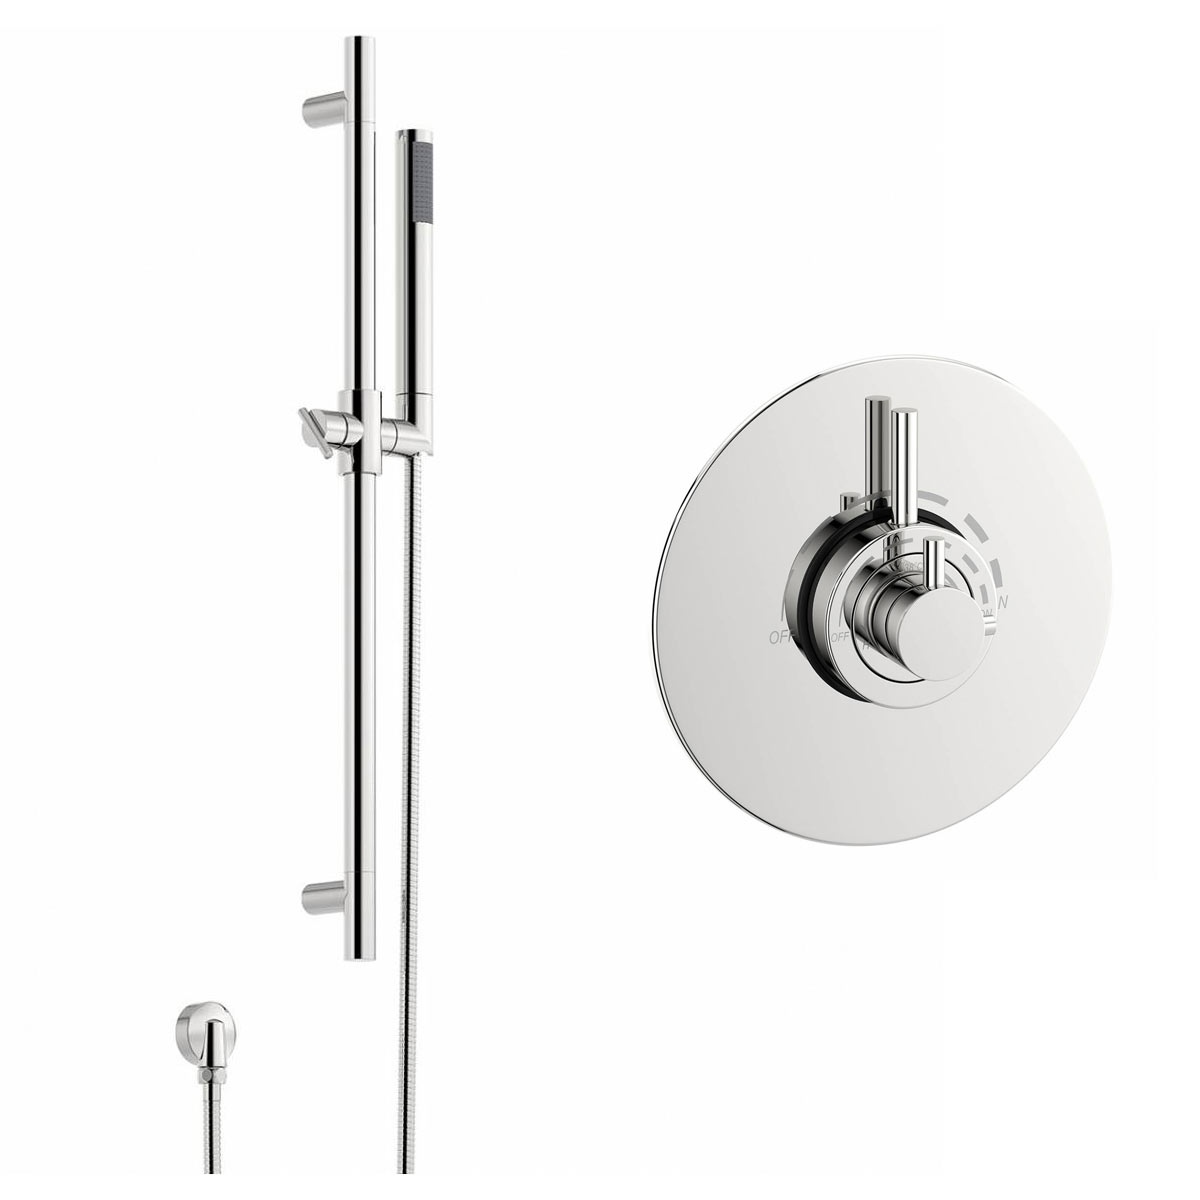 Image of Minimalist Thermostatic Dual Valve and Riser Rail Set